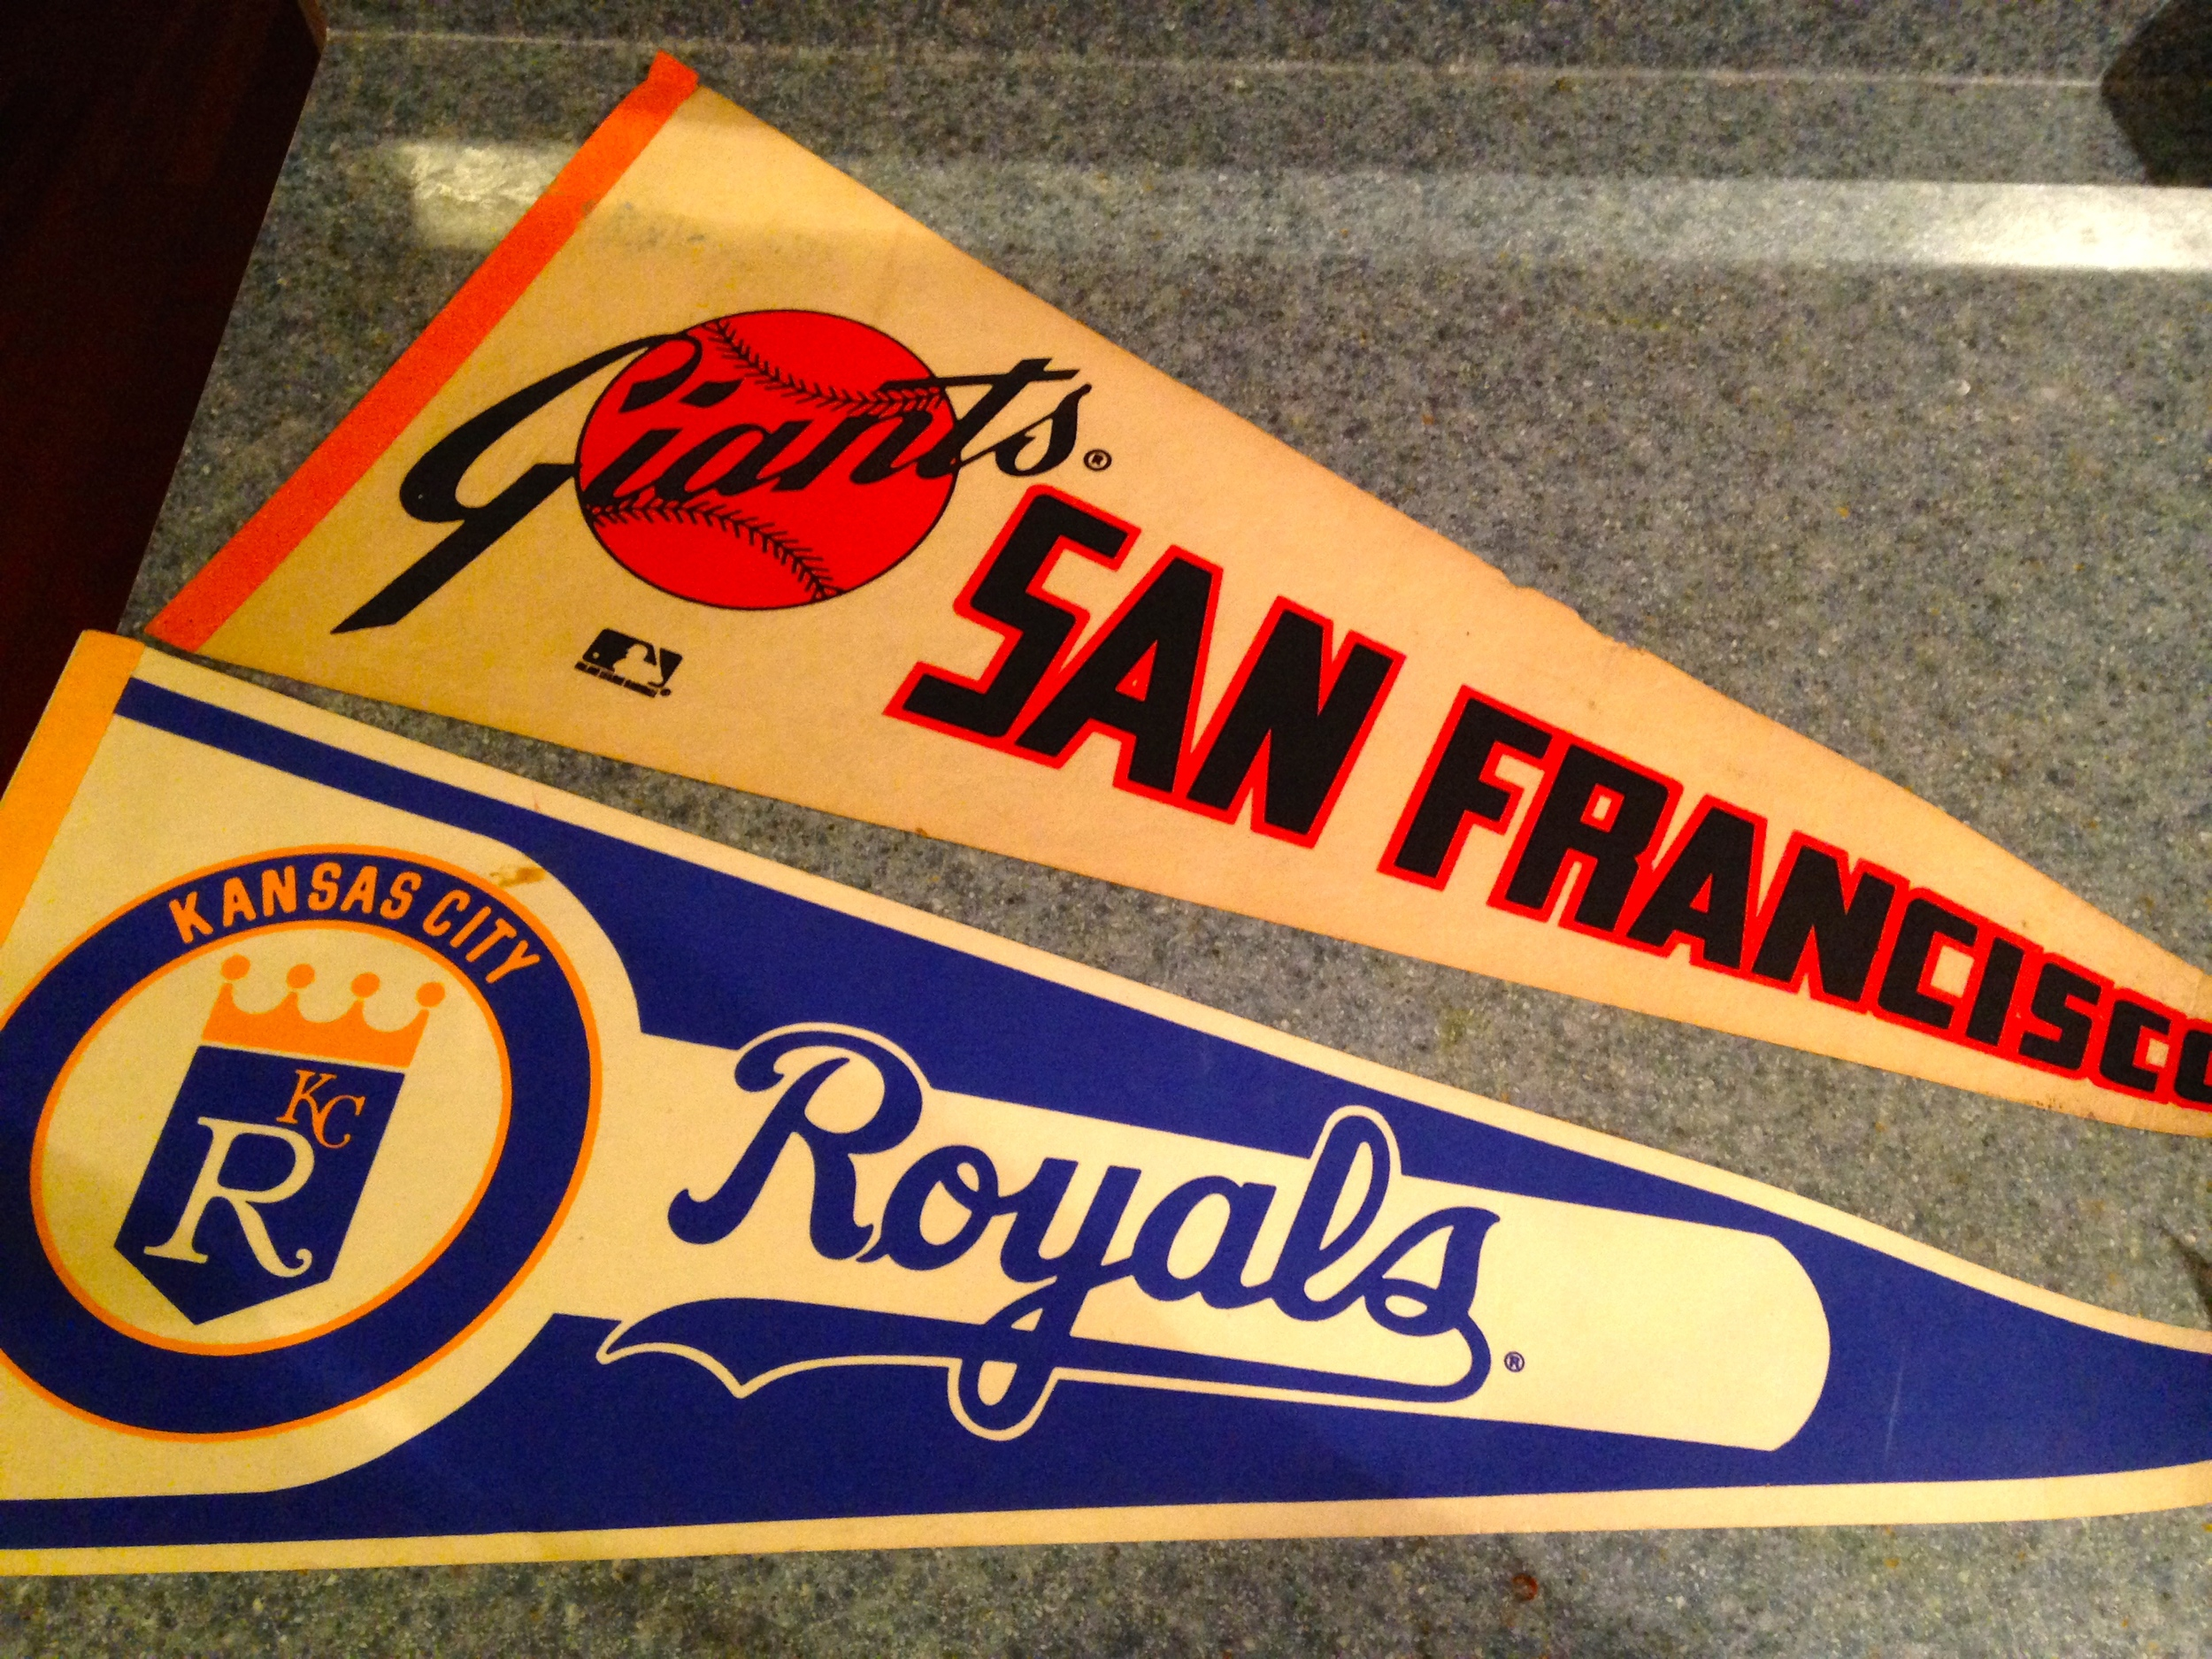 2014 NLCS Champion San Francisco Giants (Pennant c. 1977-1982) v. 2014 ALCS Champion Kansas City Royal (Pennant c. 1982)